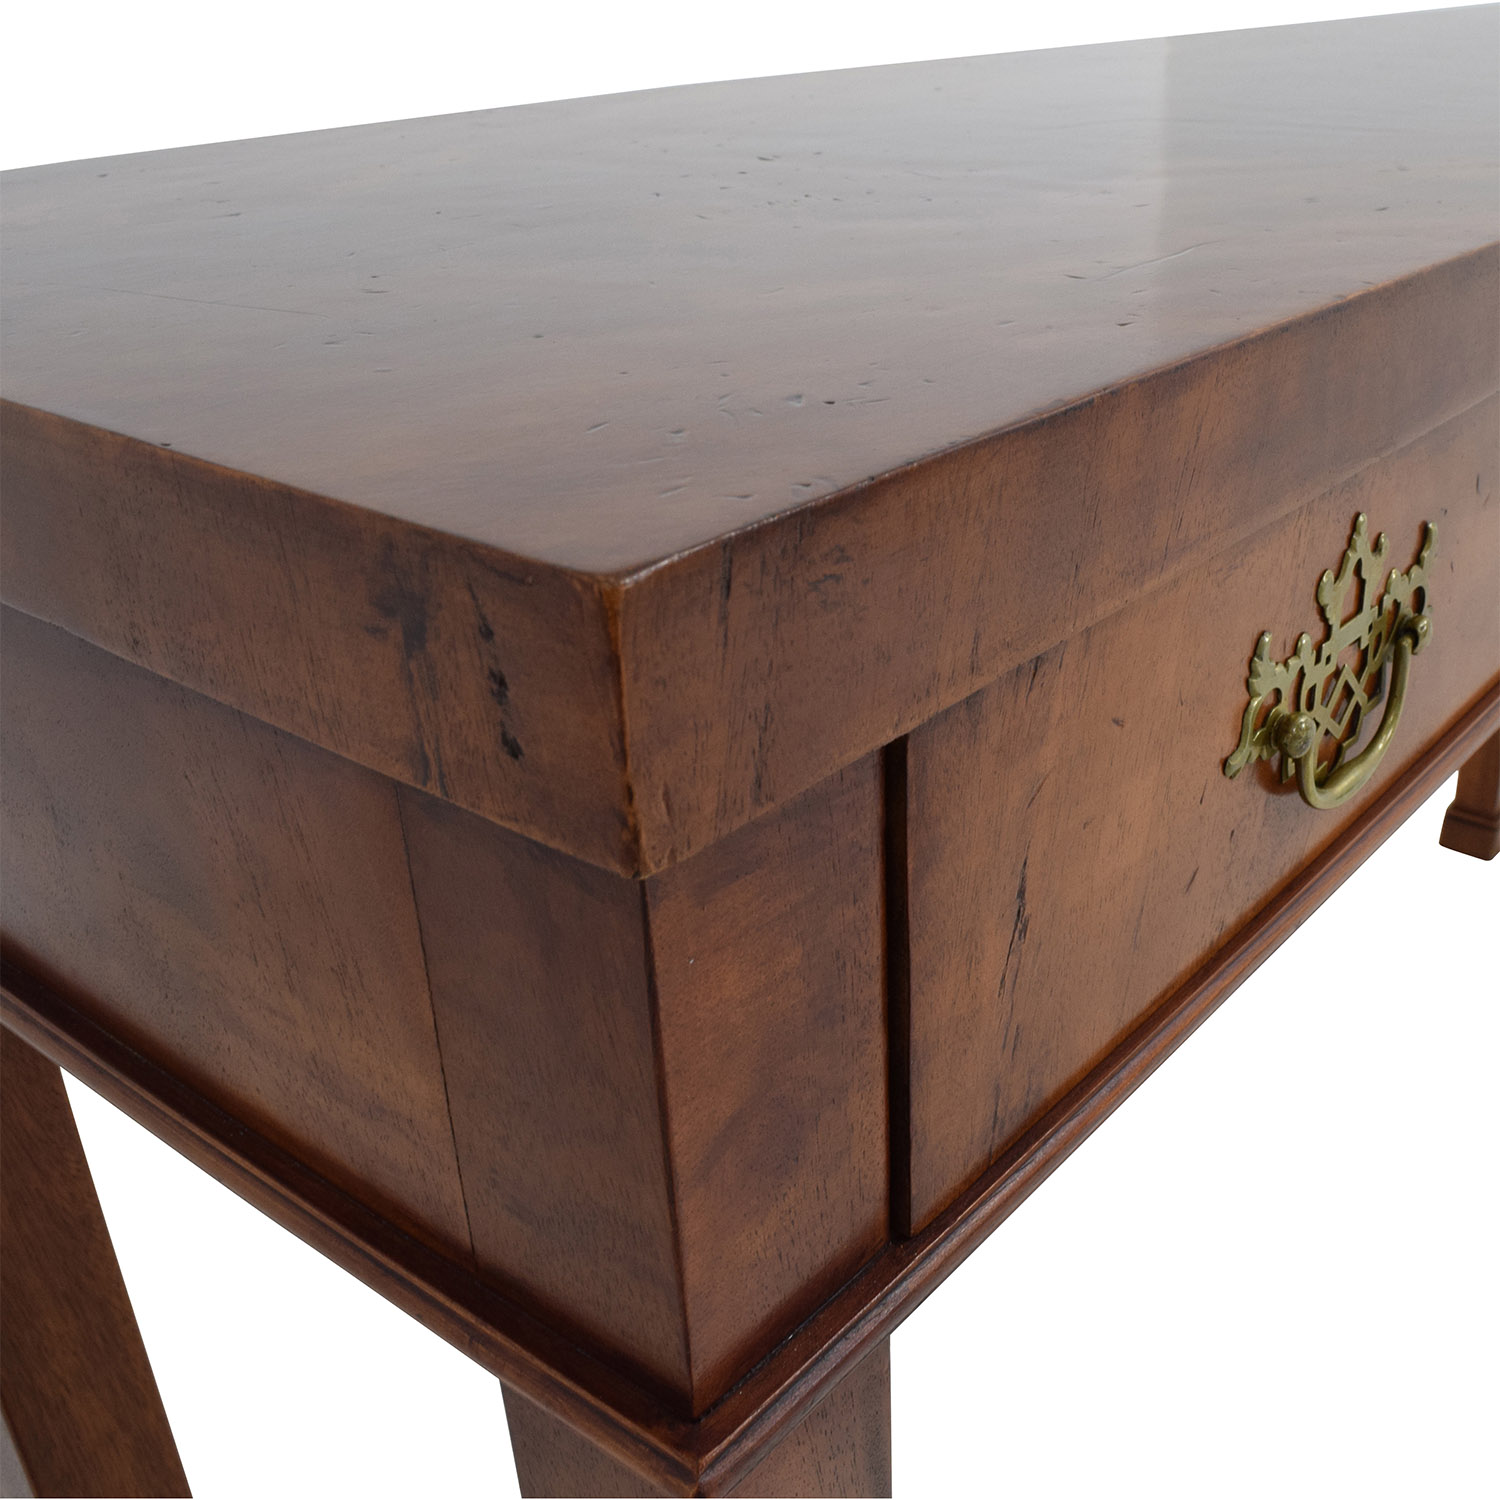 custom made sofa tables leather nailhead set 90% off - two-drawer wood table /